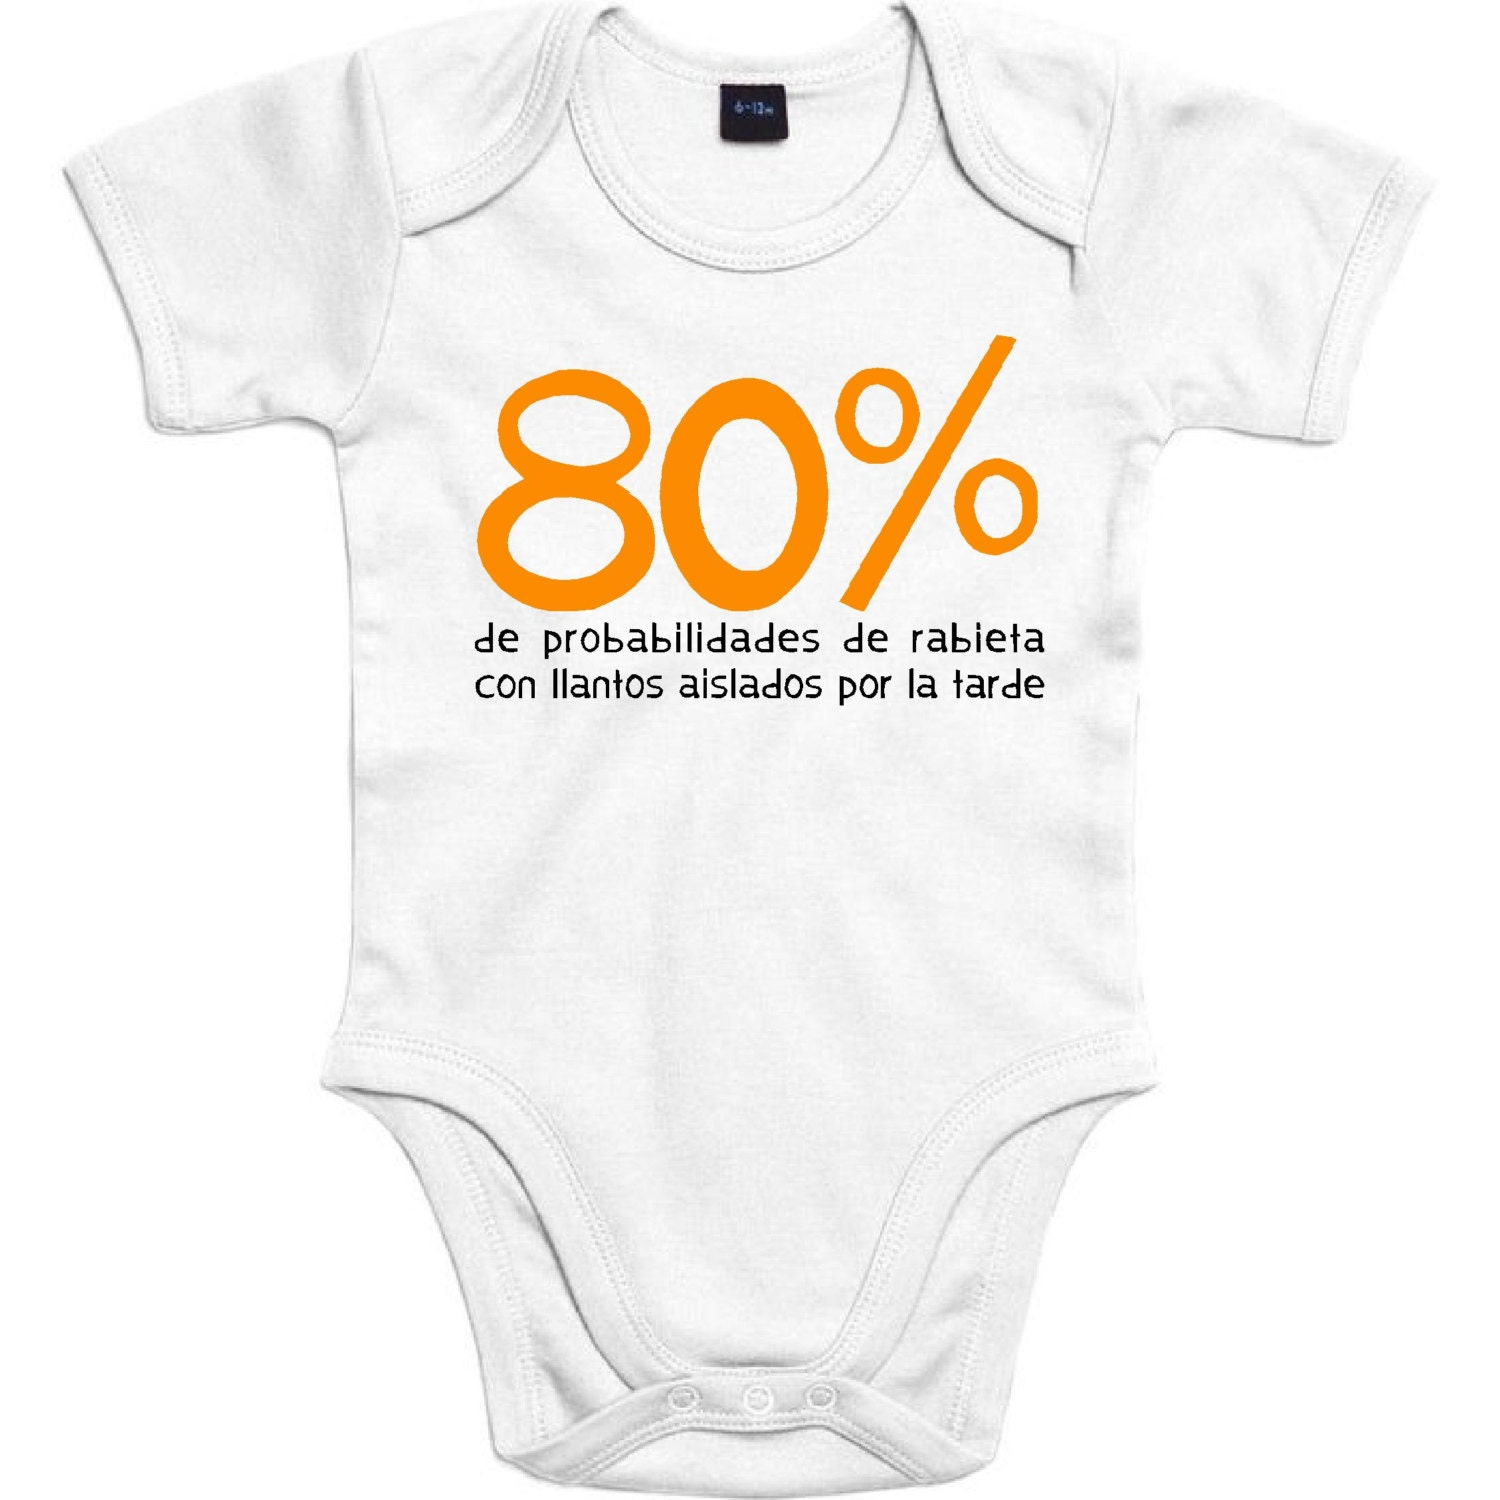 Funny Baby Cute Baby clothes Unisex baby clothes Newborn - photo#40